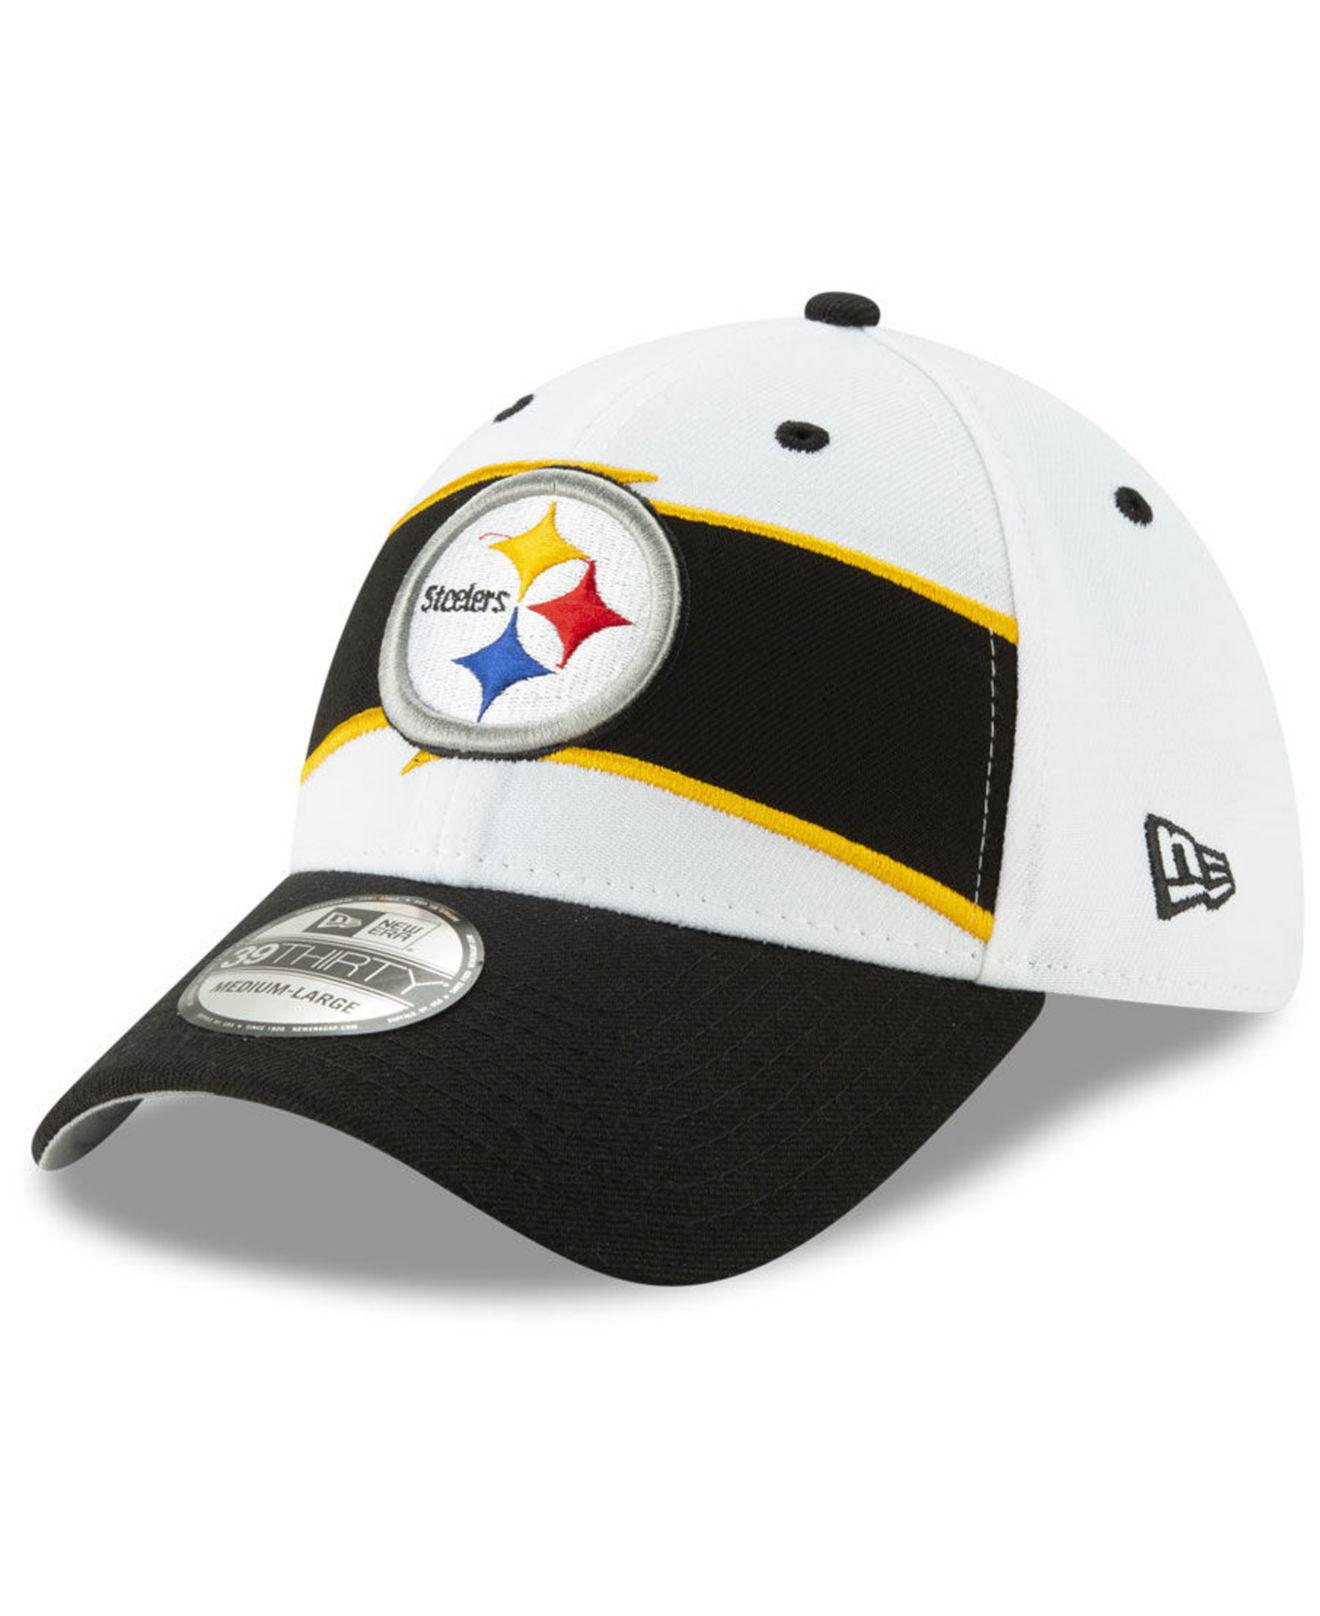 a3274a2e08d Lyst - KTZ Pittsburgh Steelers Thanksgiving 39thirty Cap in Black ...